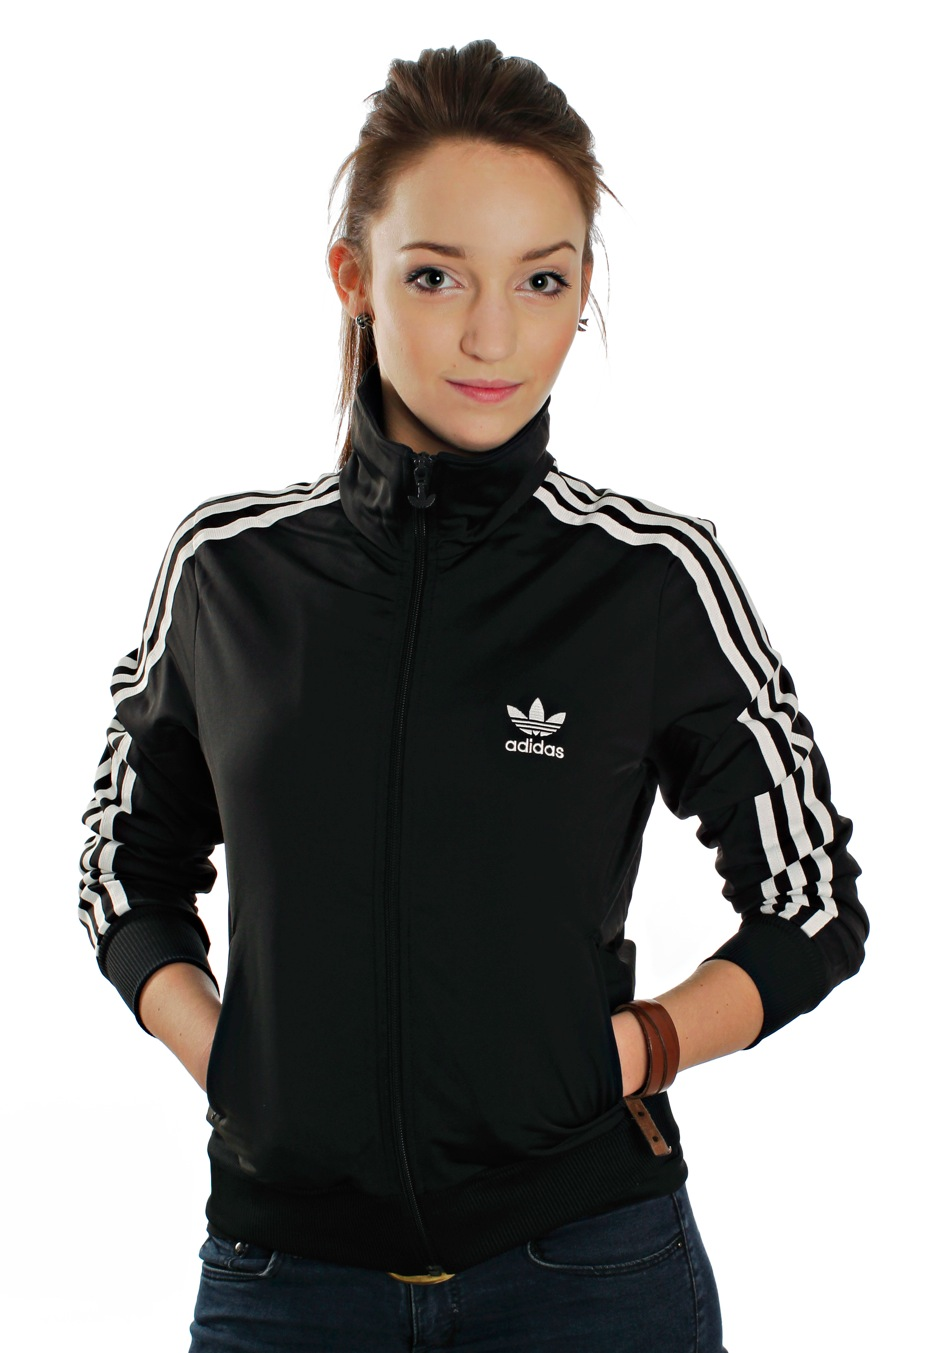 Adidas Jacket For Girlsadidas Cc Climacool Off46 Free Shipping